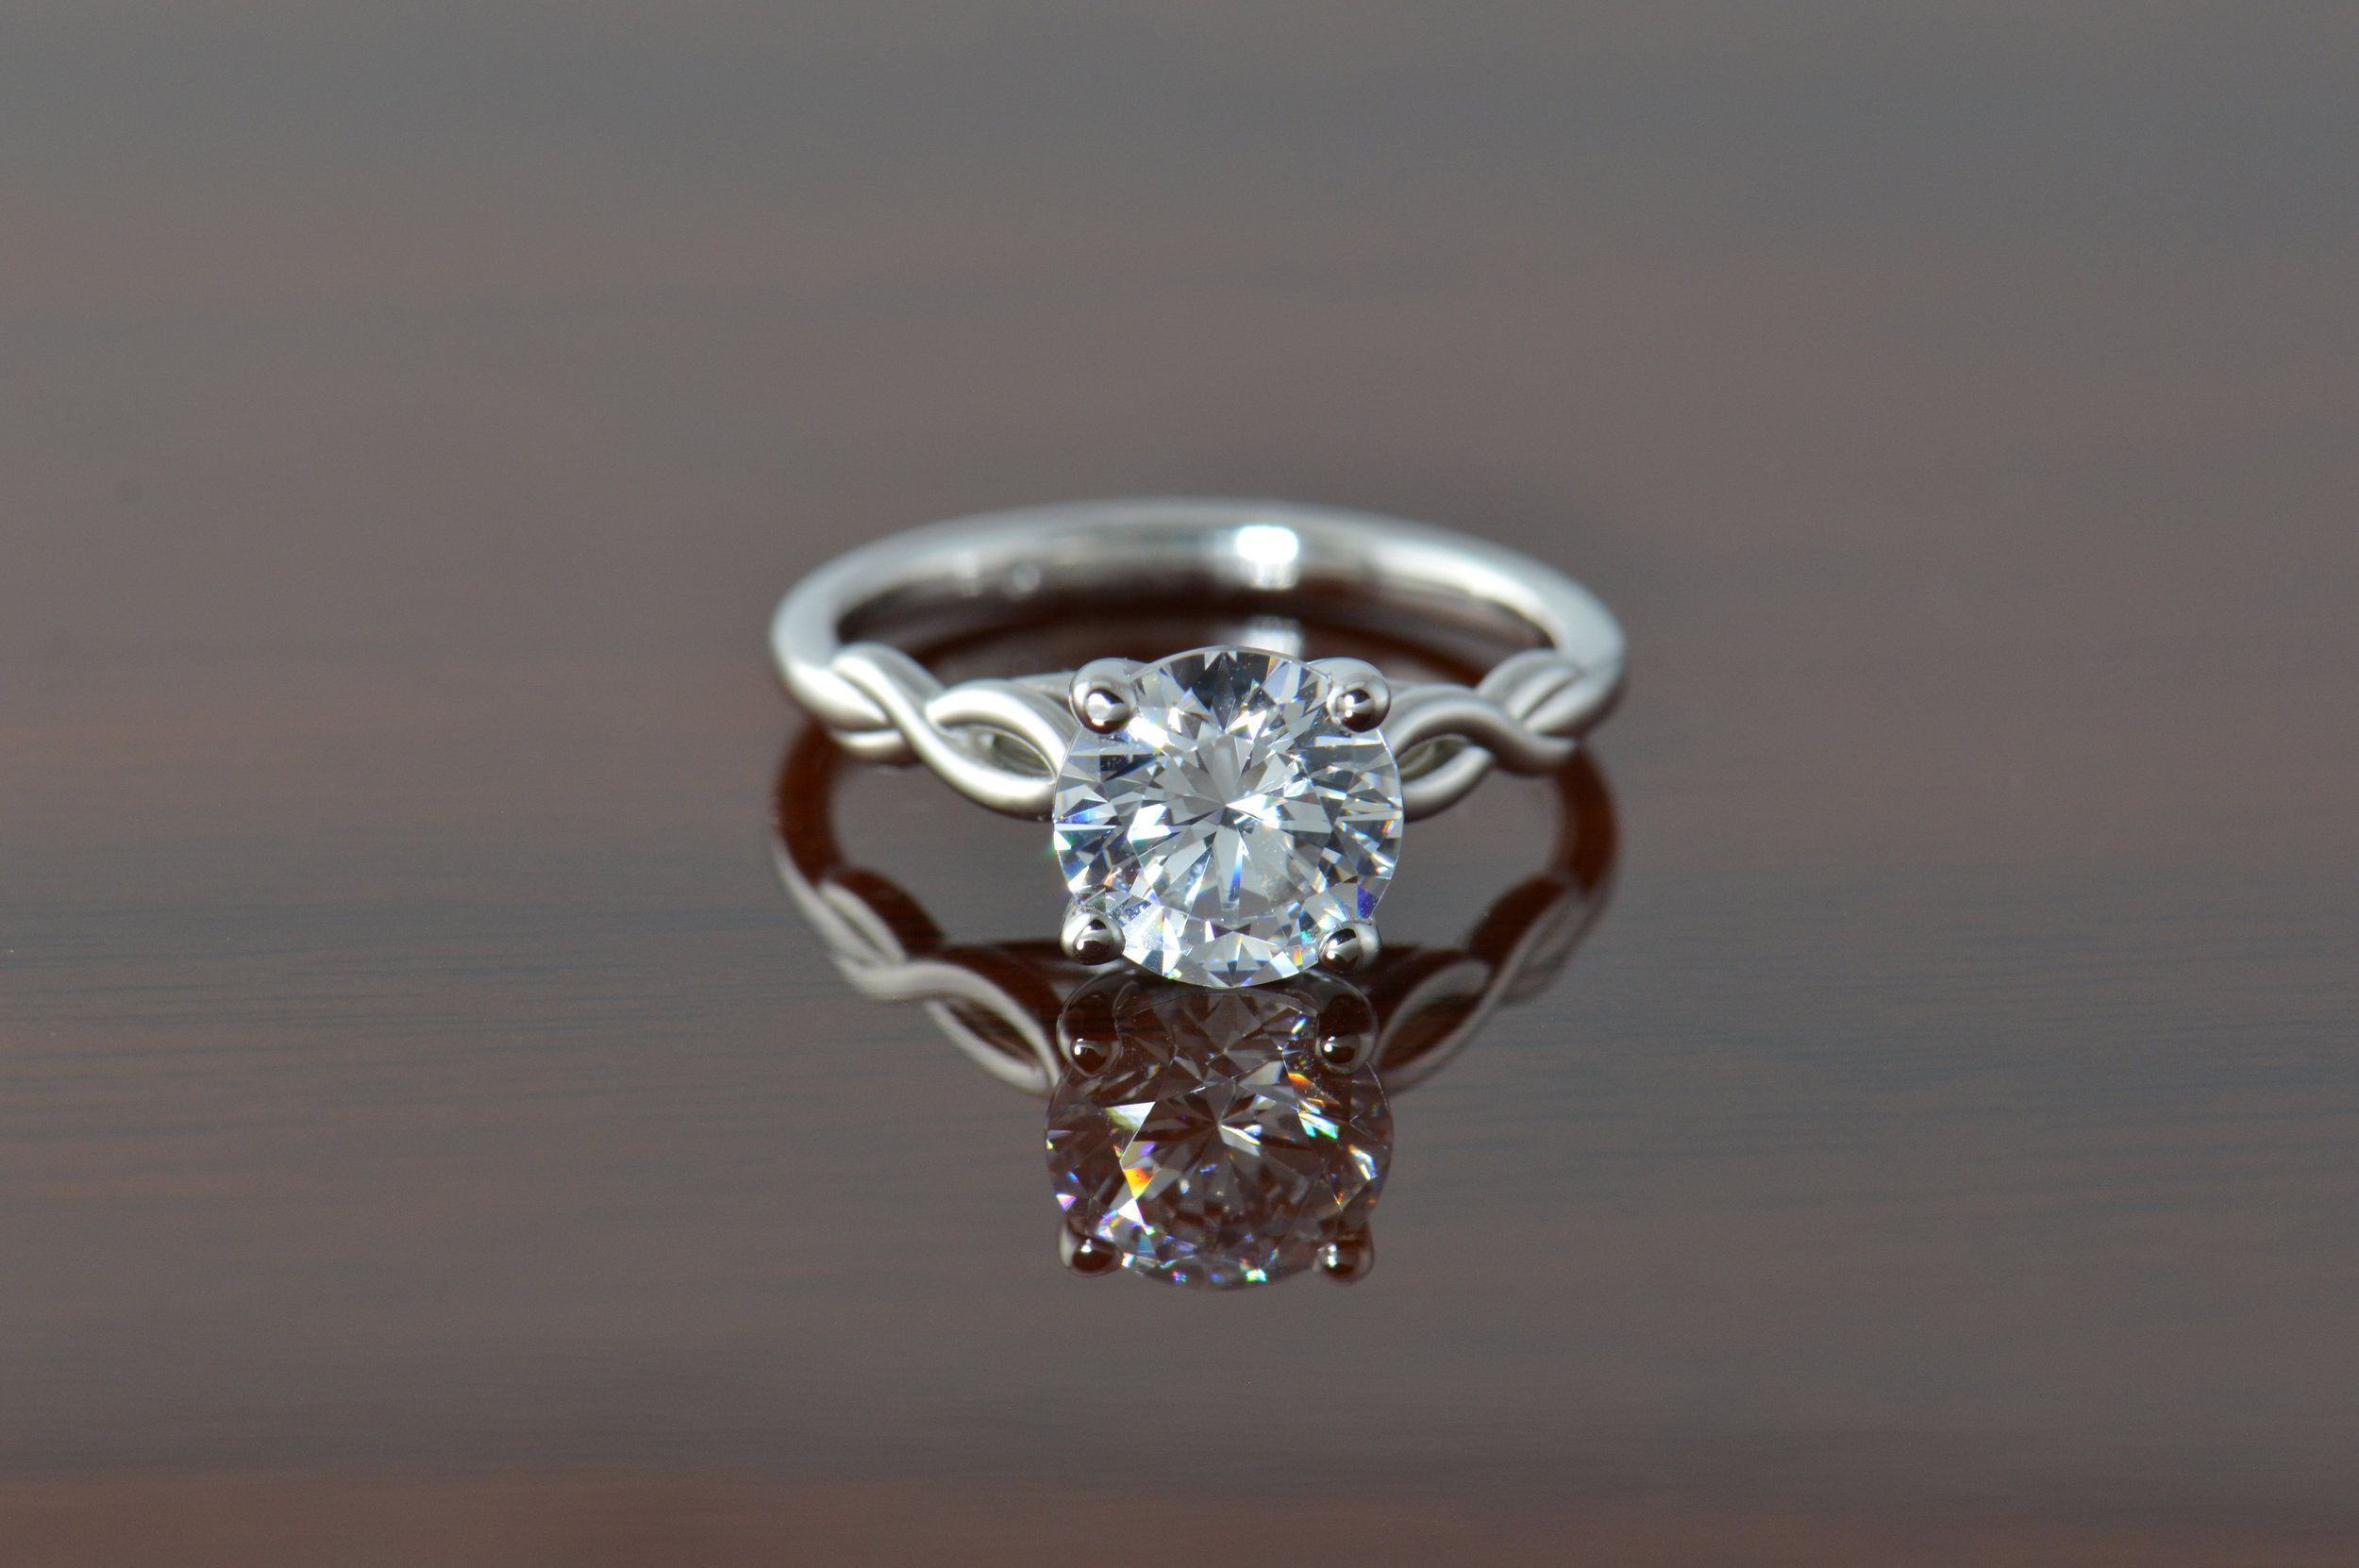 darvier-woven-engagement-solitaire.JPG